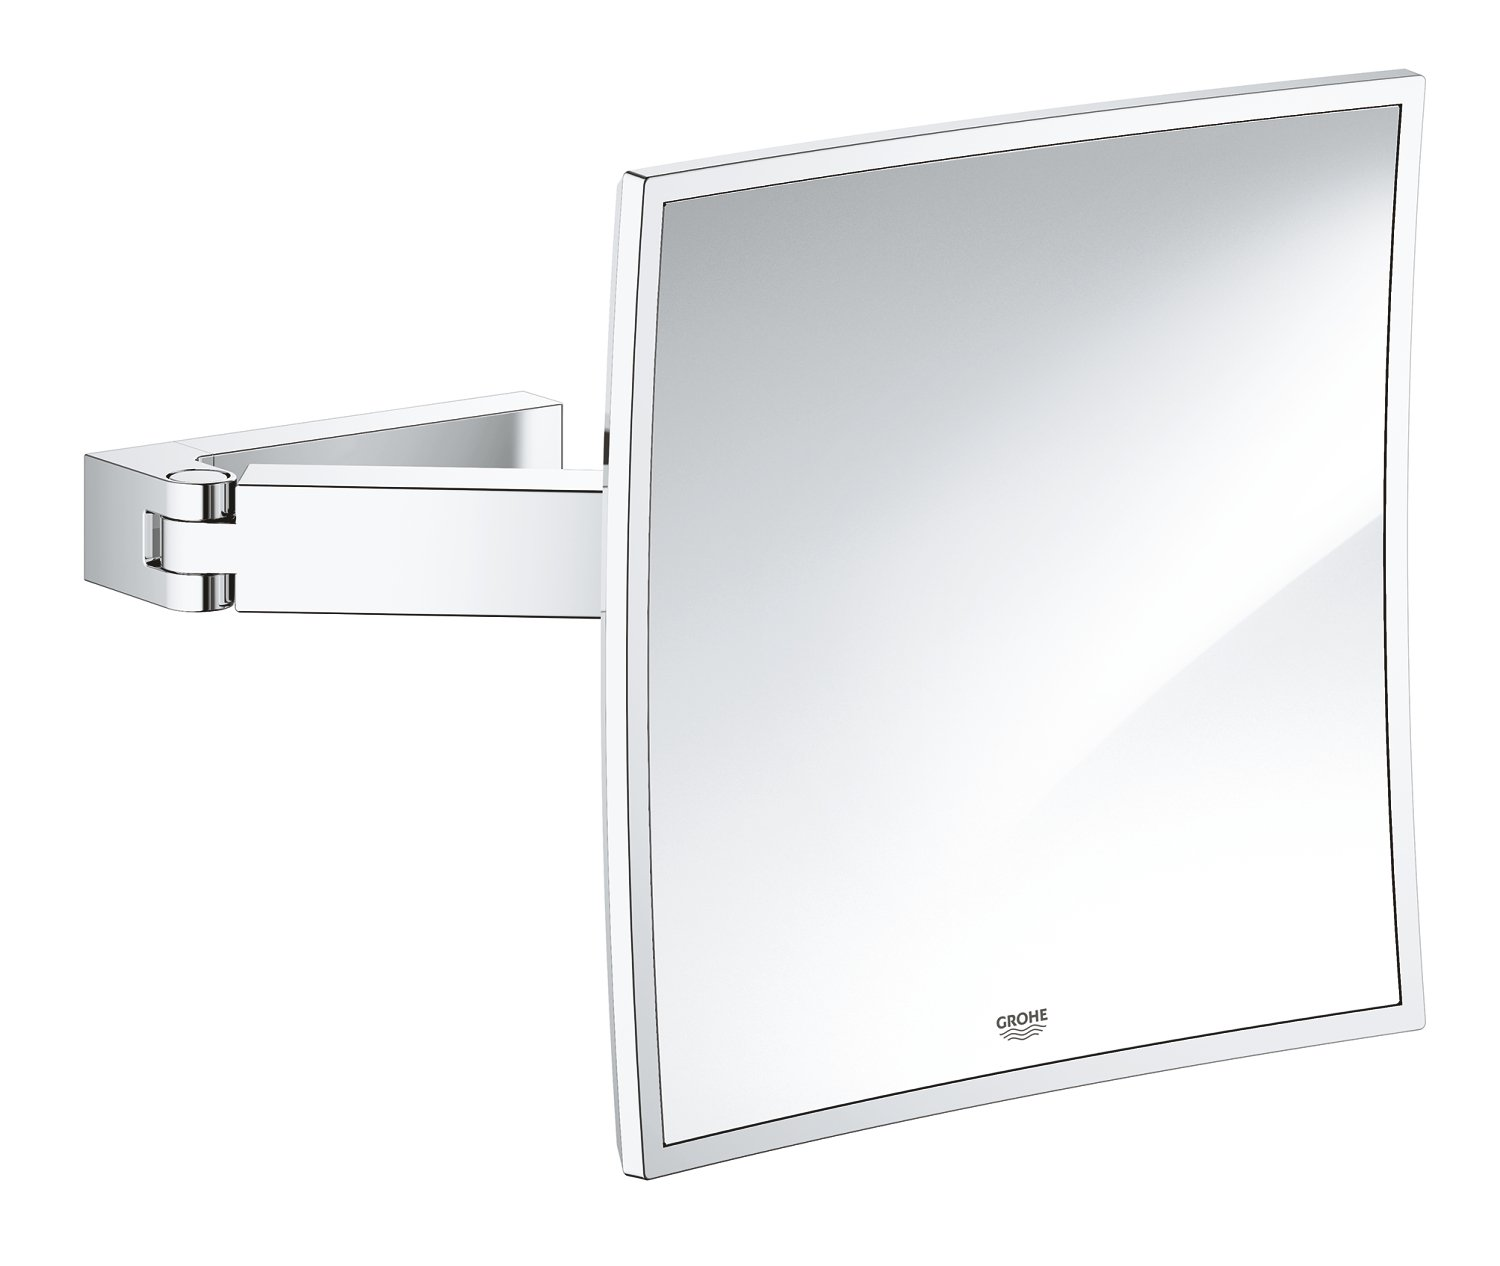 GROHE 40808000 Selection Cube Cosmetic Mirror, Starlight Chrome by GROHE